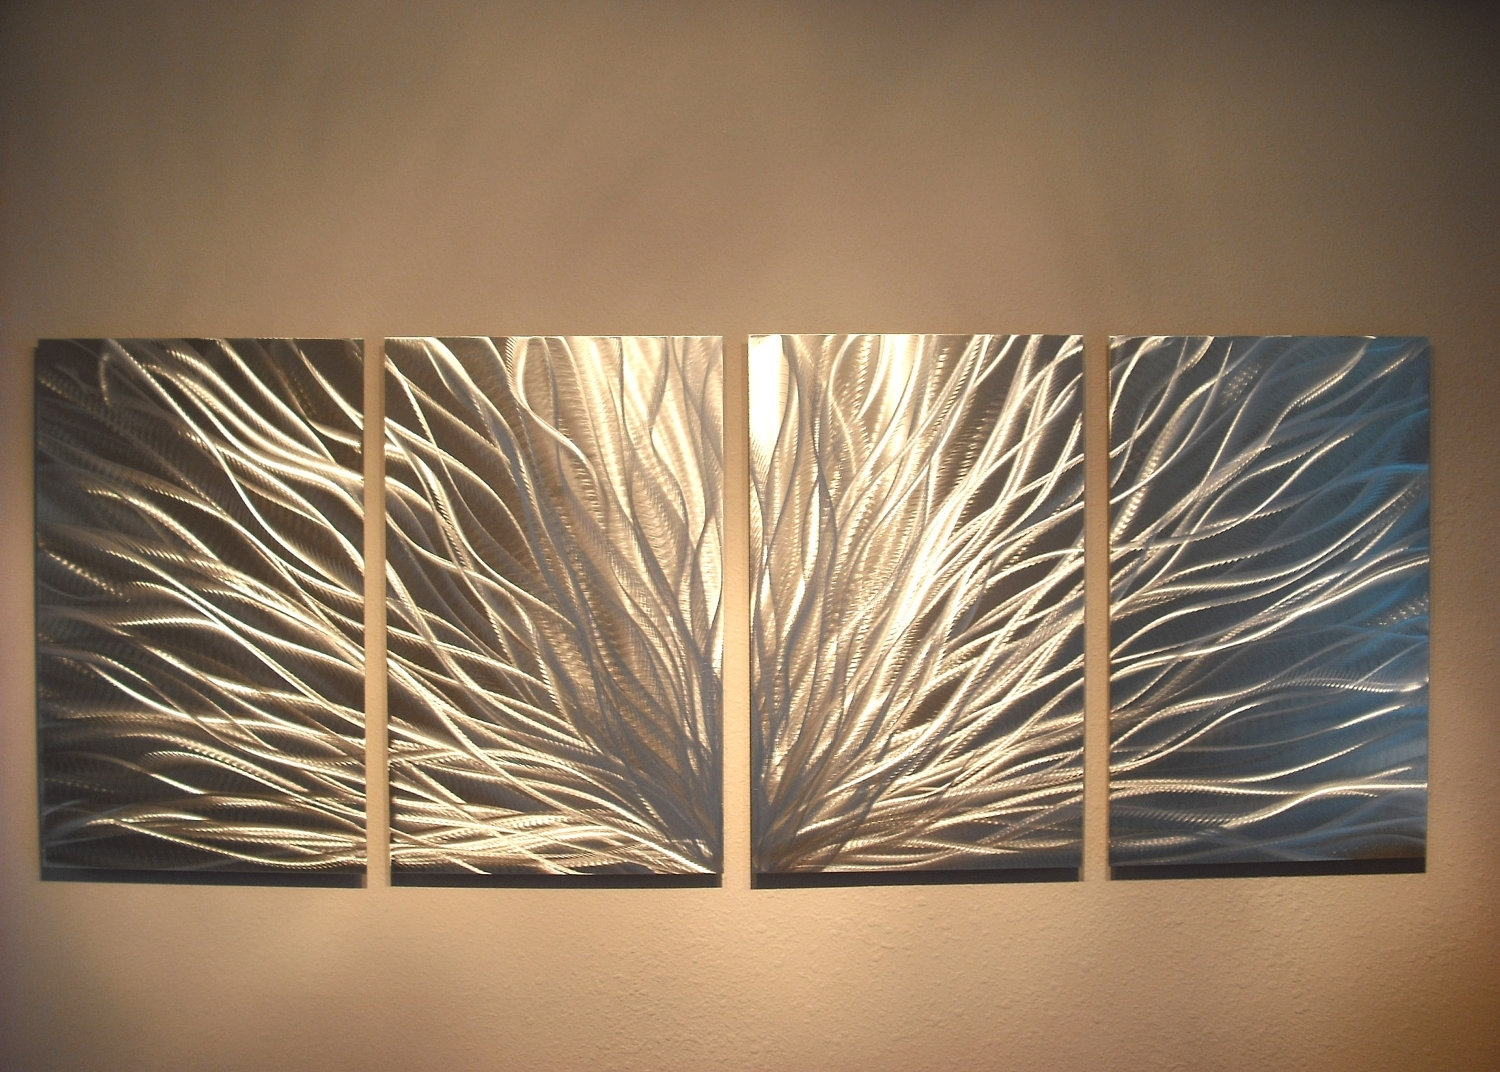 Radiance – Abstract Metal Wall Art Contemporary Modern Decor In Best And Newest Long Abstract Wall Art (View 14 of 20)